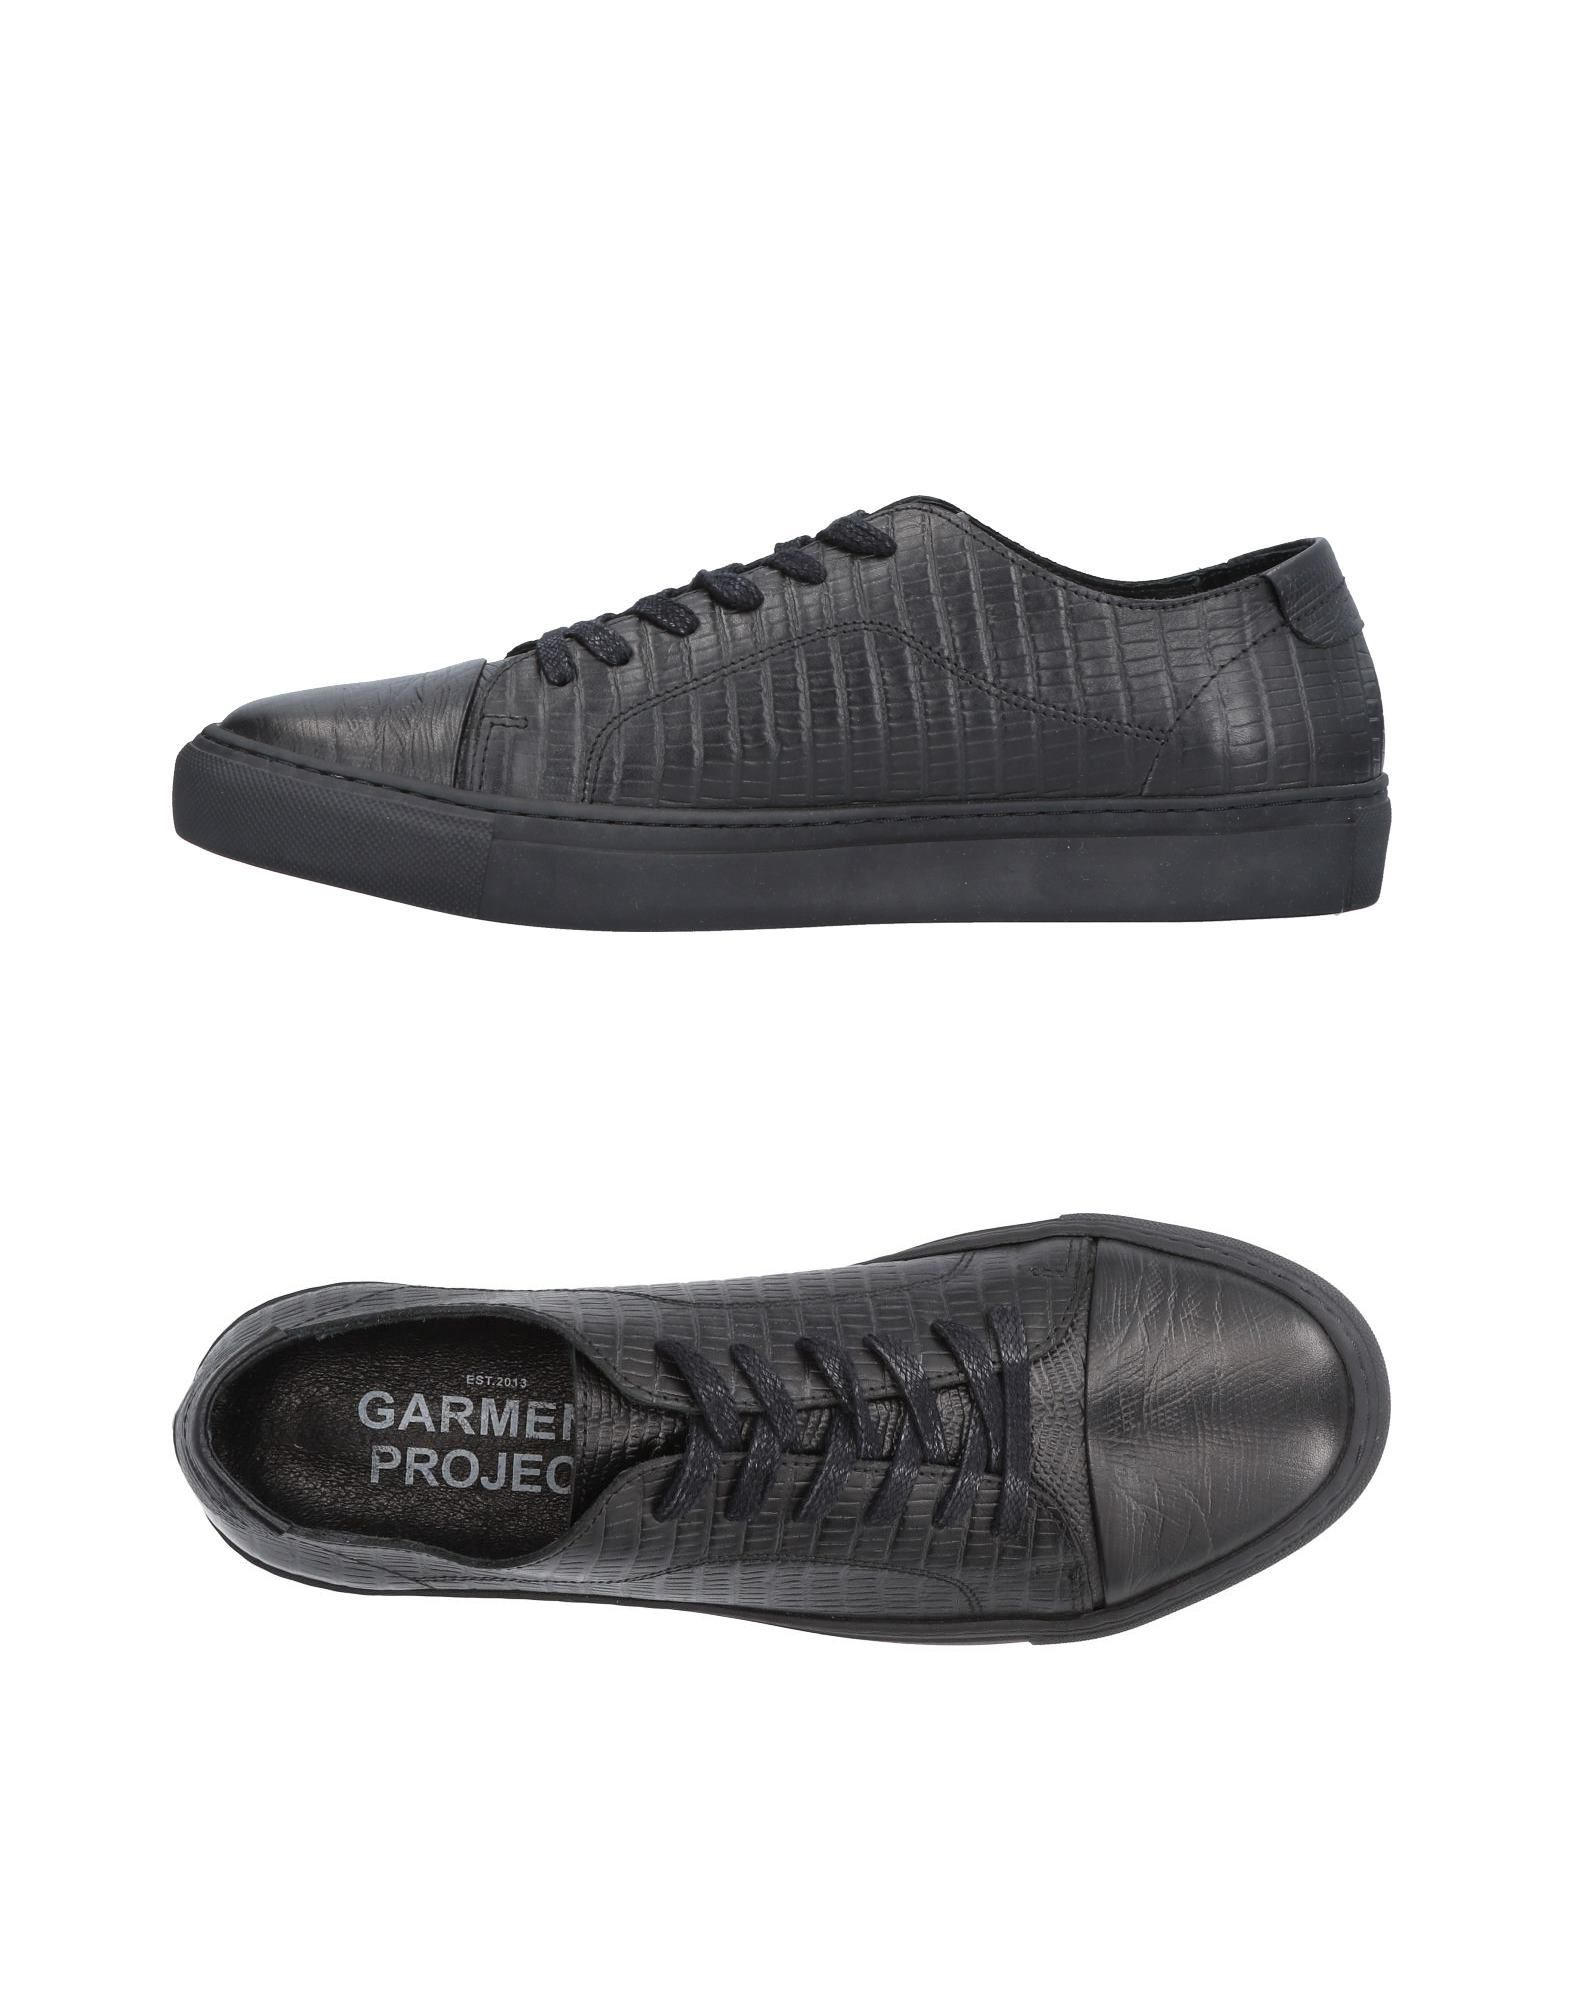 Sneakers Garment Project Homme - Sneakers Garment Project  Noir Confortable et belle